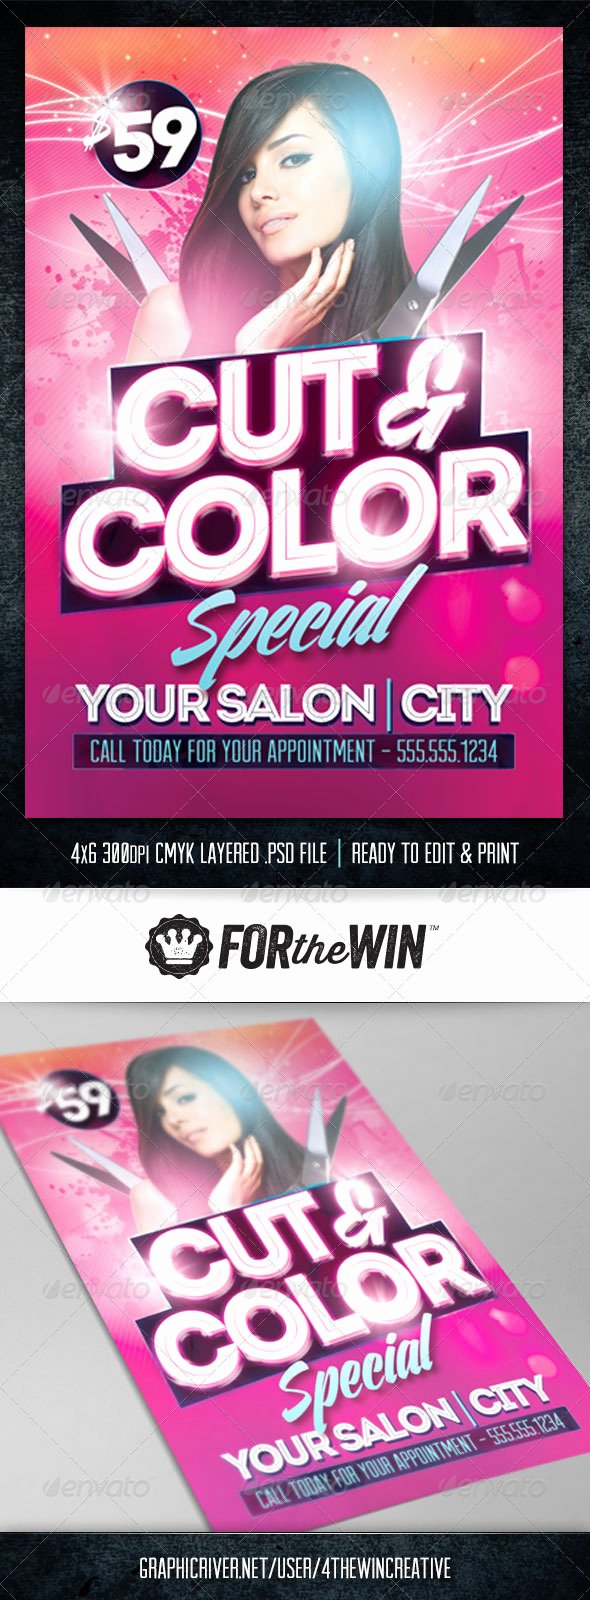 Hair Salon Flyer Template by 4thewincreative